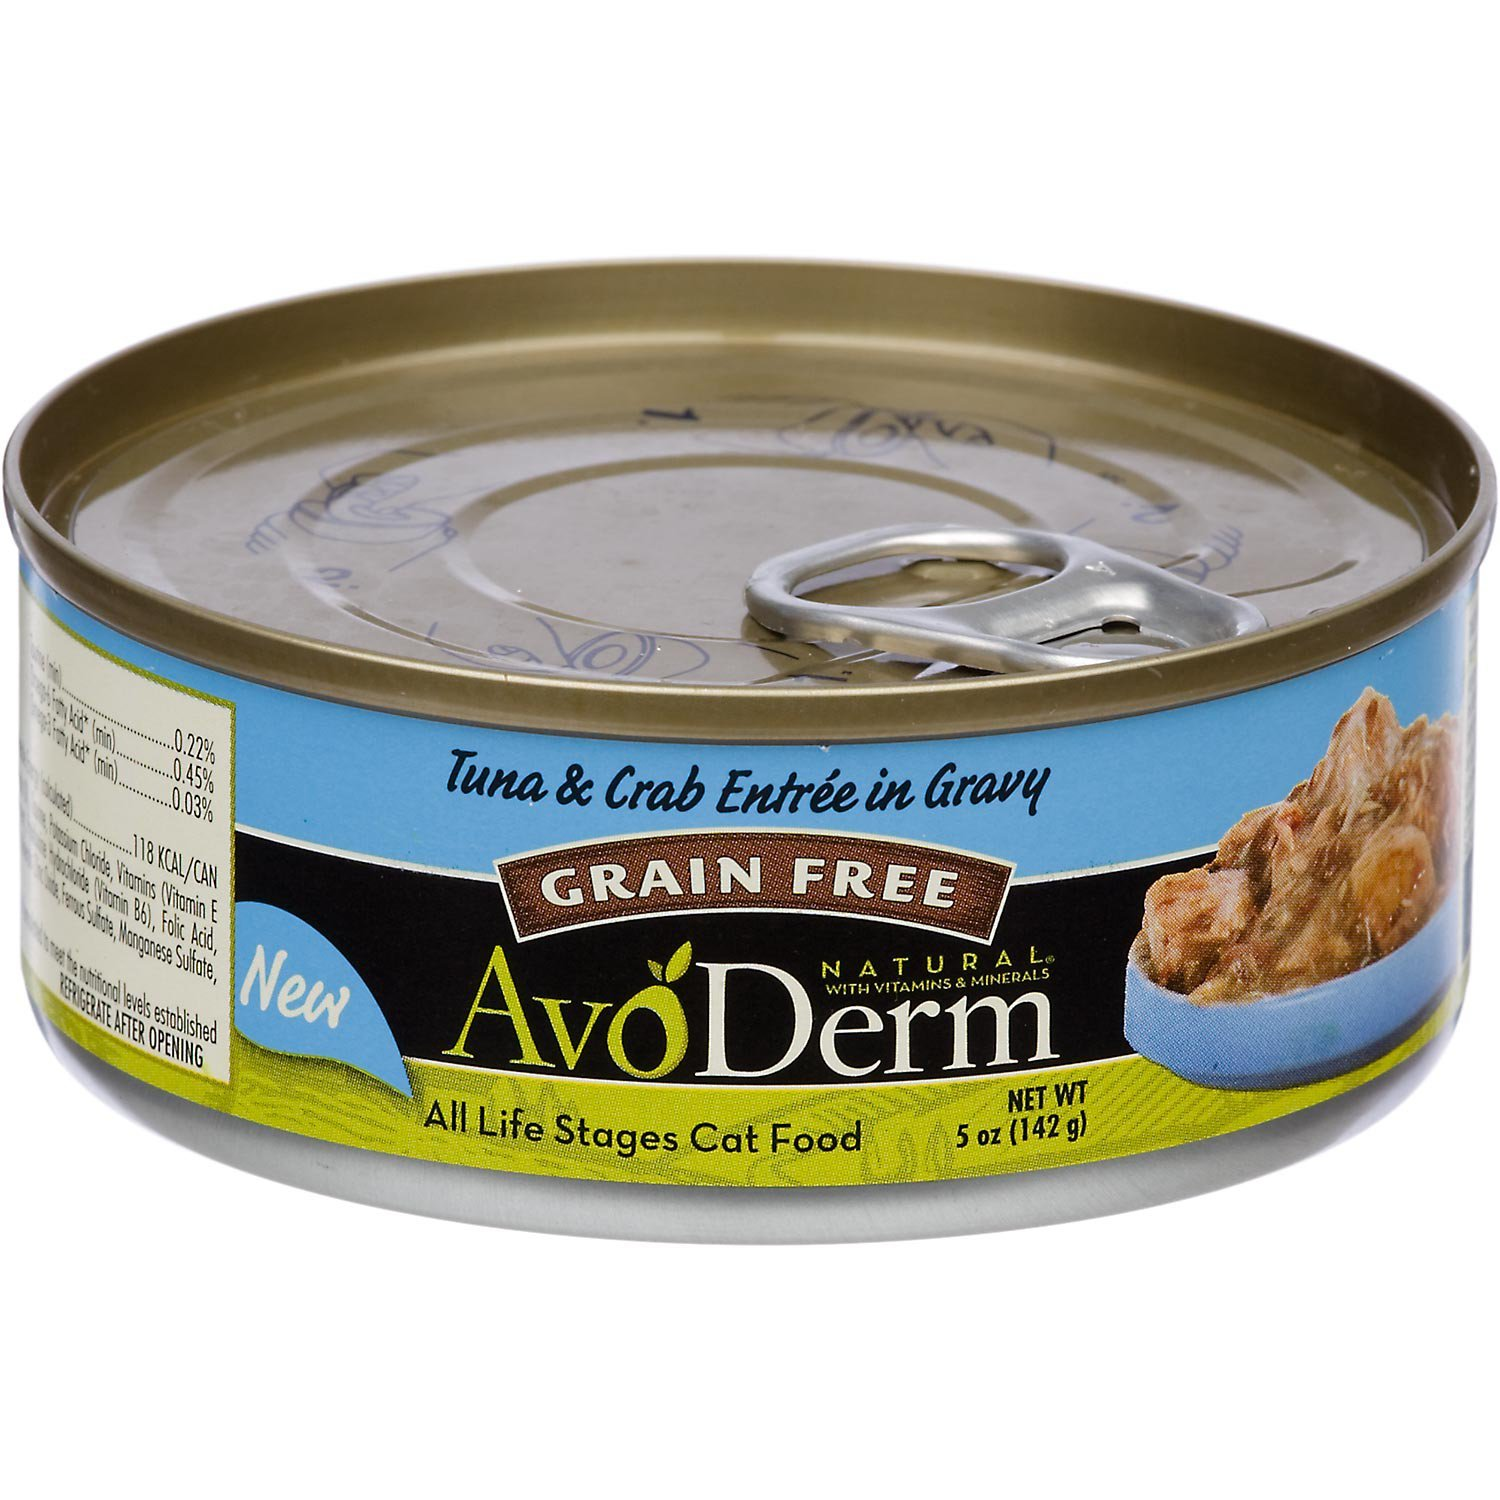 AvoDerm Natural Grain Free Tuna & Crab Entree in Gravy Canned Wet Cat Food